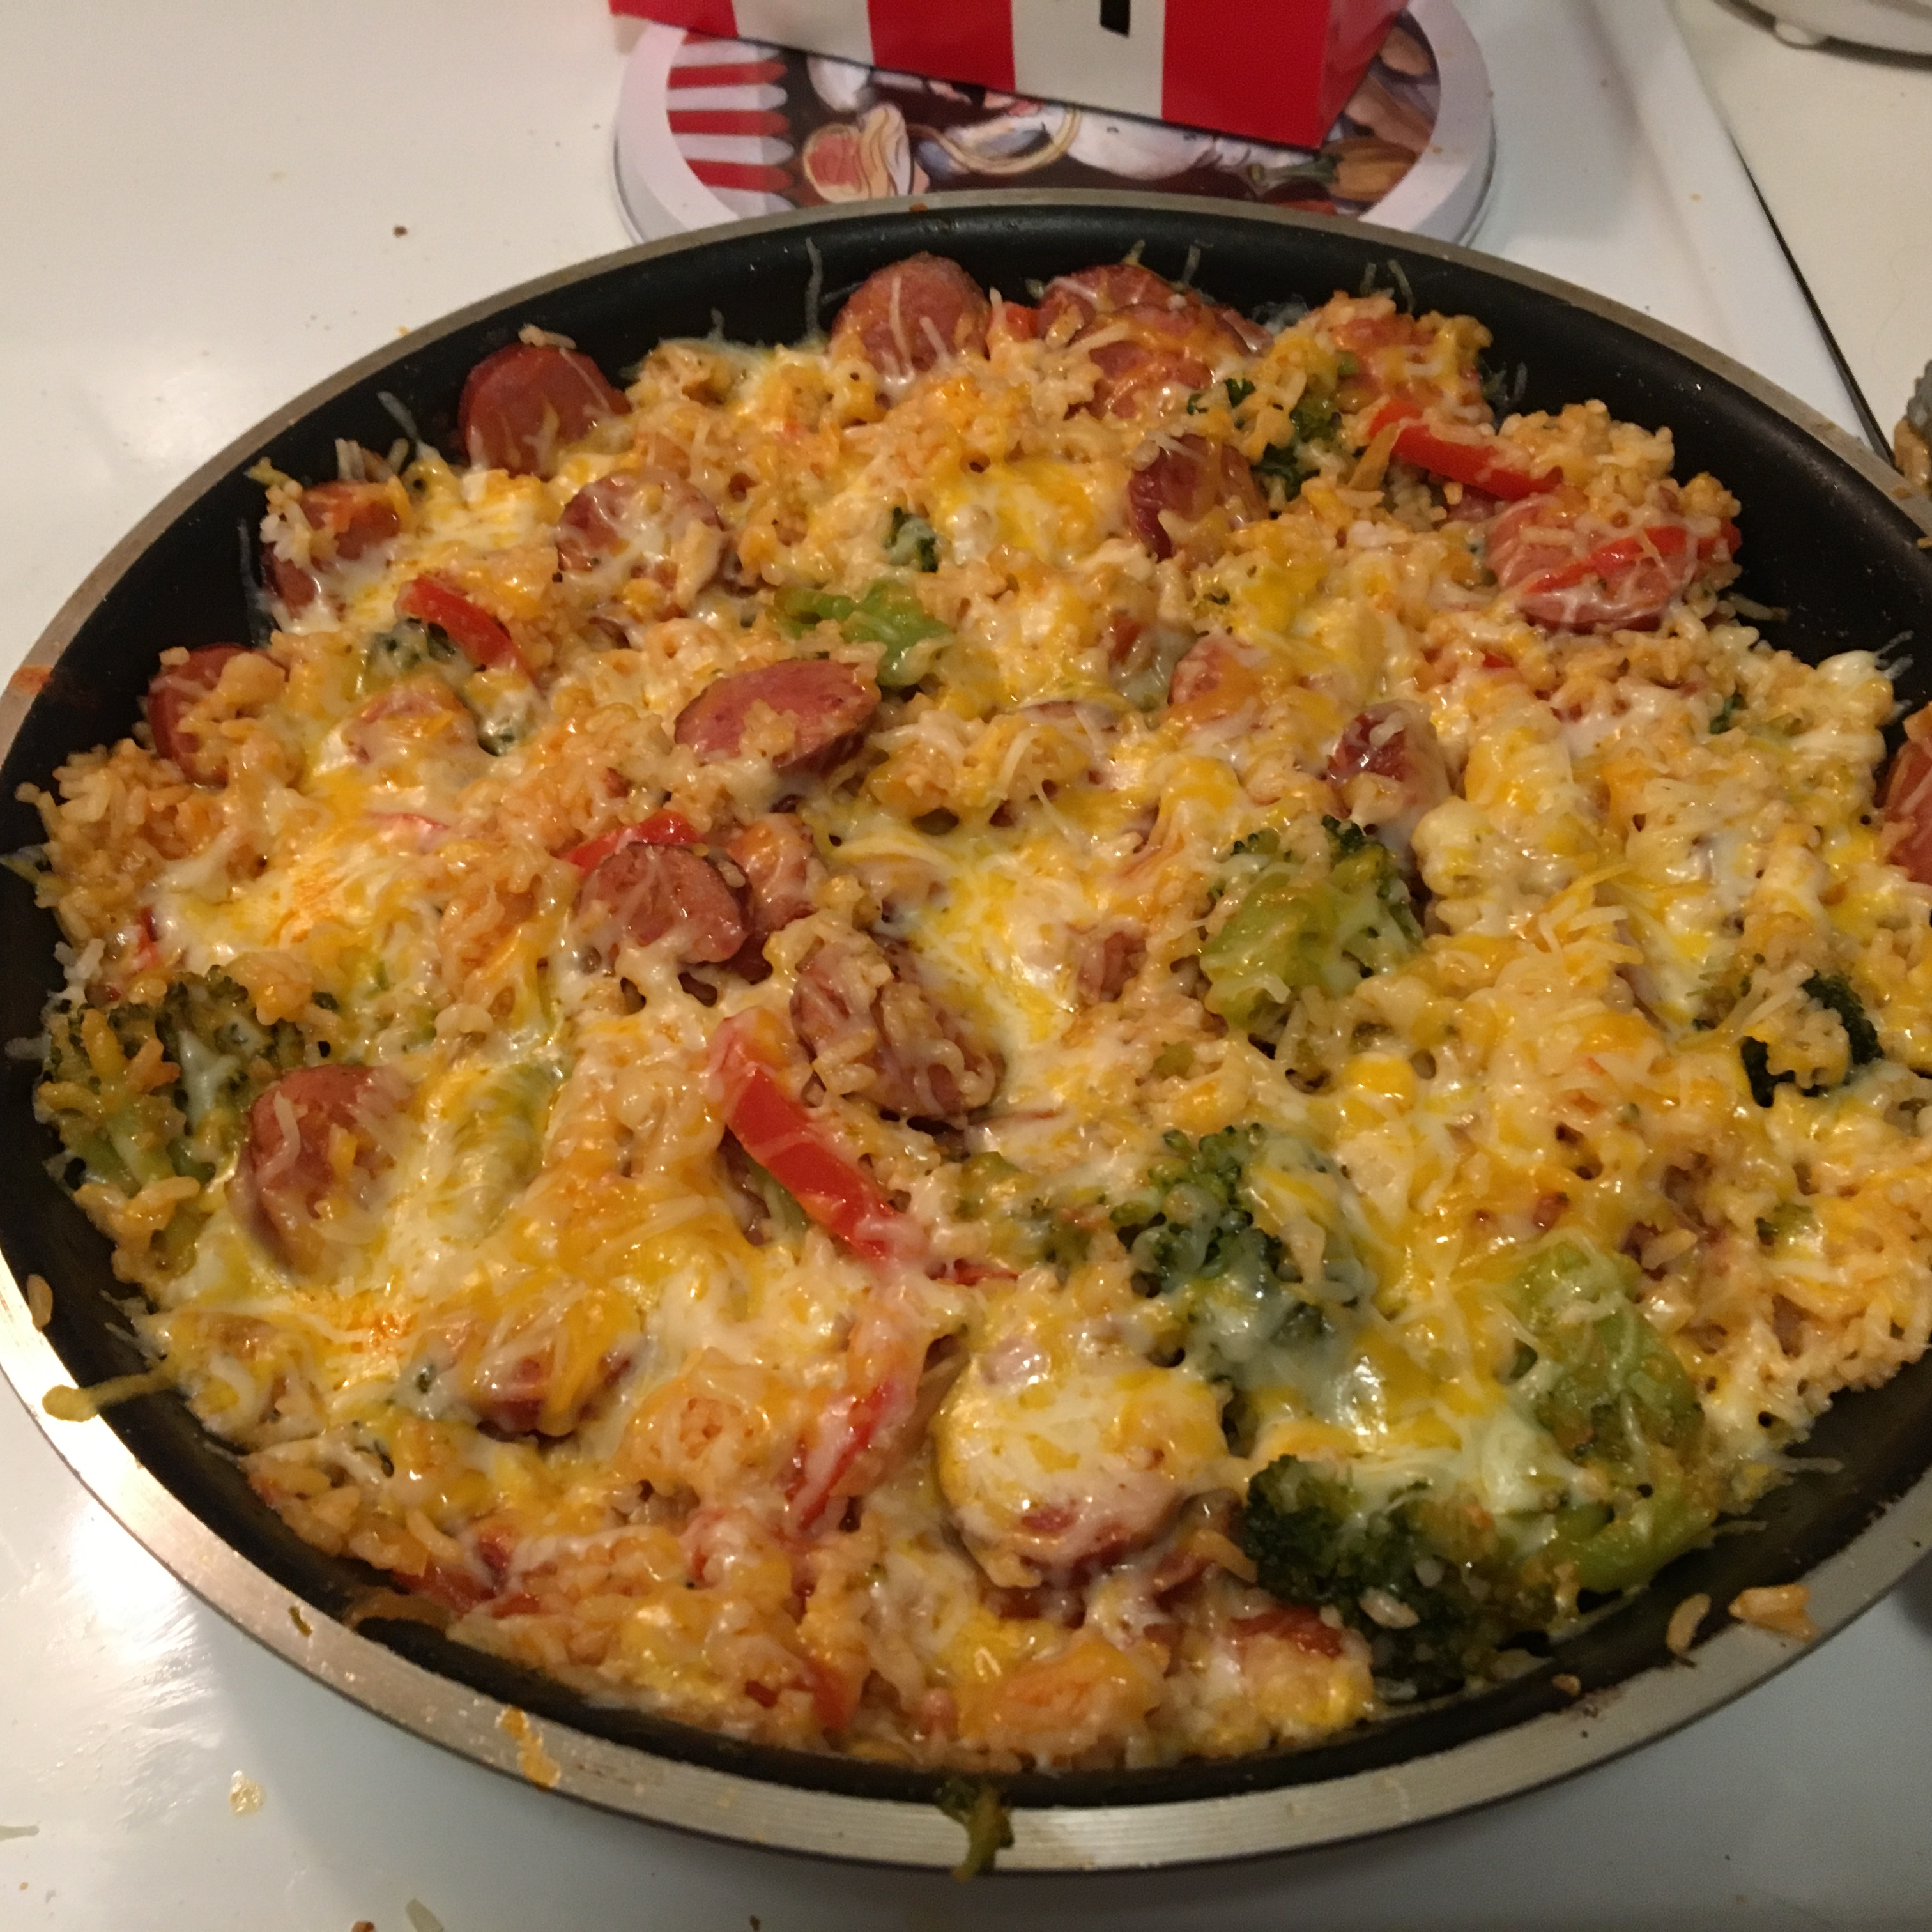 Easy Smoked Sausage Skillet Stormy Cazeault